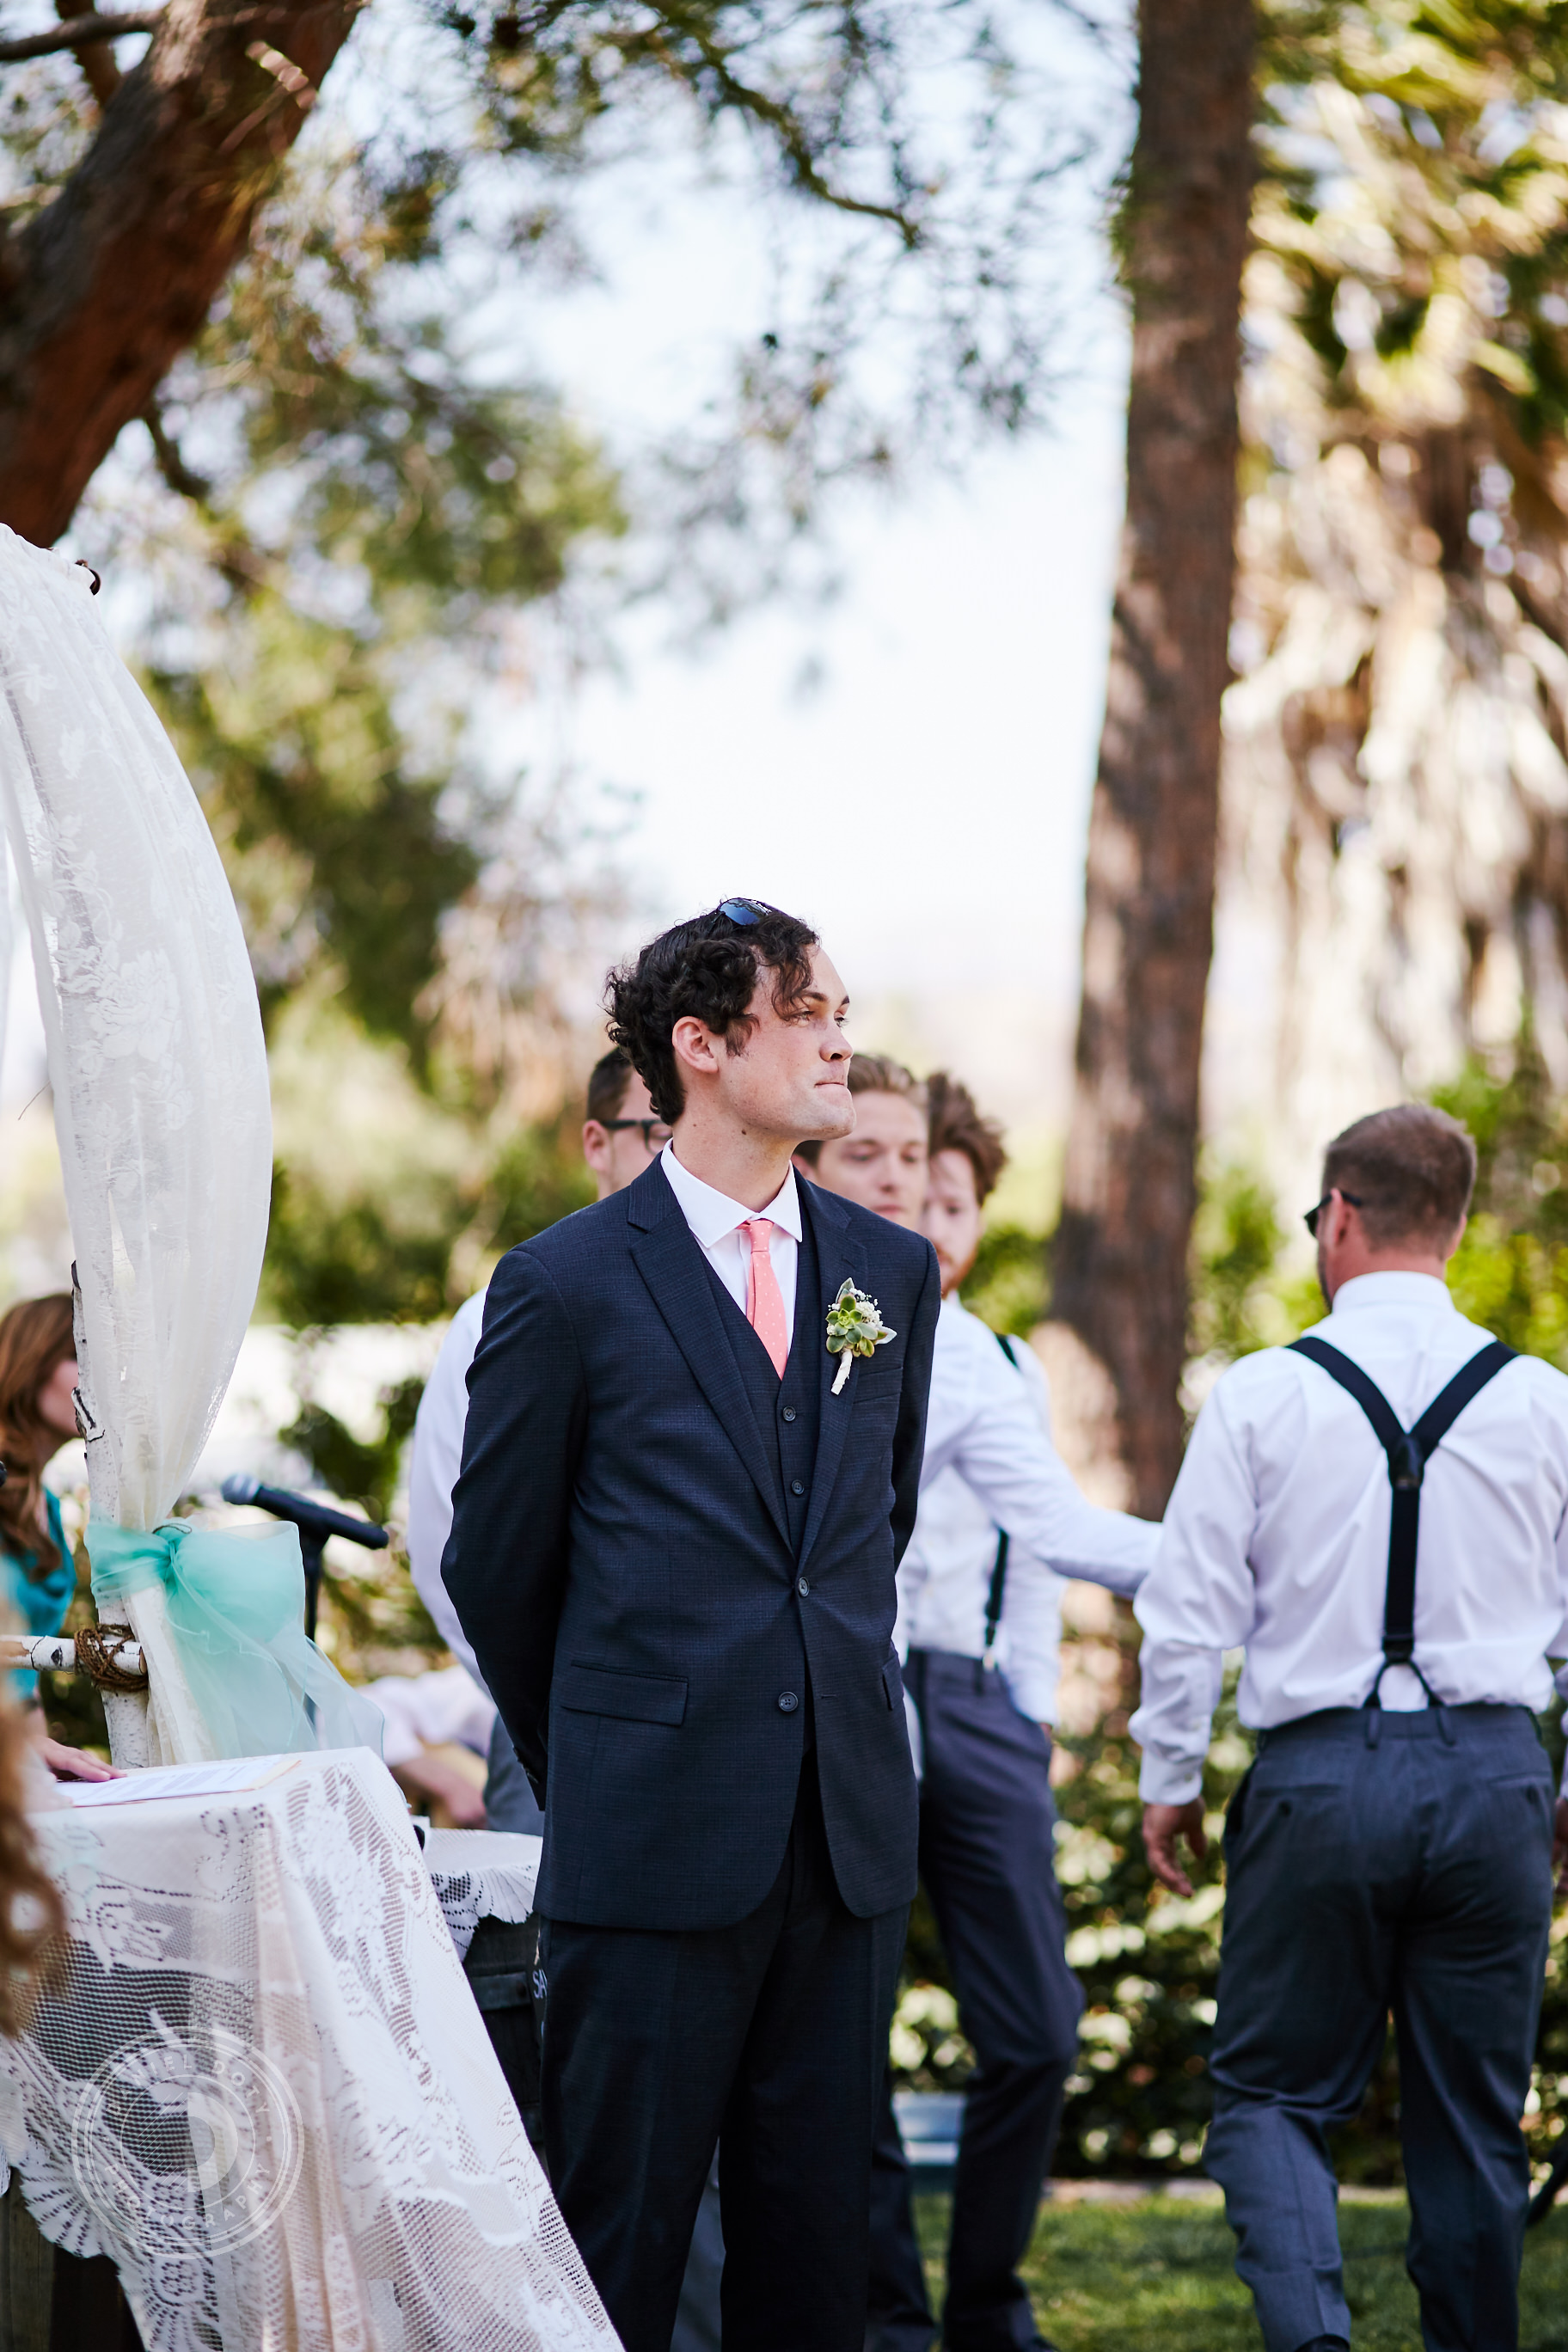 Daniel Doty Photography Erin Colin SoCal Wedding Photographer Strathearn 112.jpg